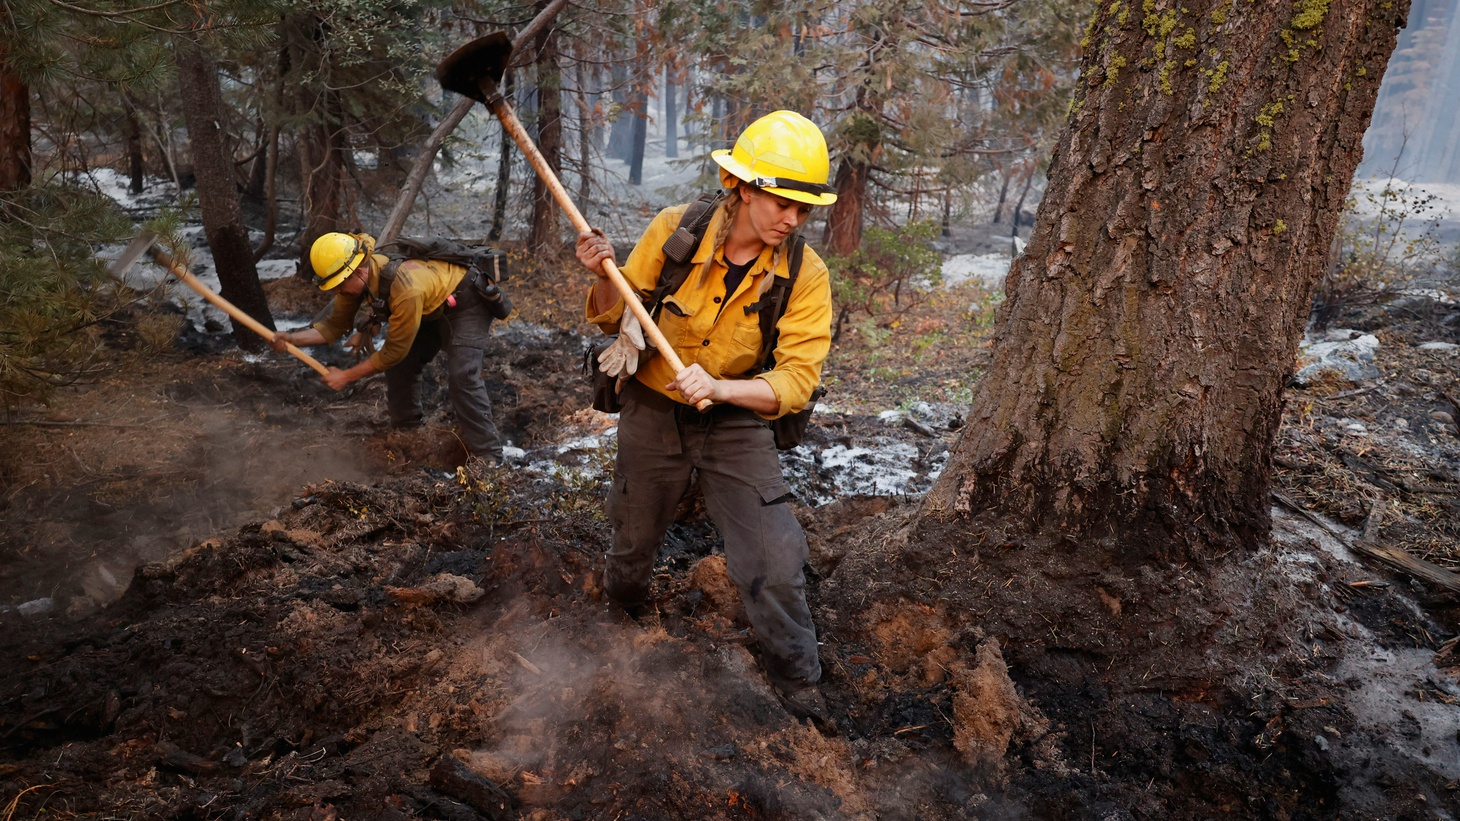 Firefighters Stephanie Lockhart and Dustin Peters of North Tahoe Fire break up smoldering areas after the Caldor Fire moved through the area, in South Lake Tahoe, California, U.S., September 1, 2021.